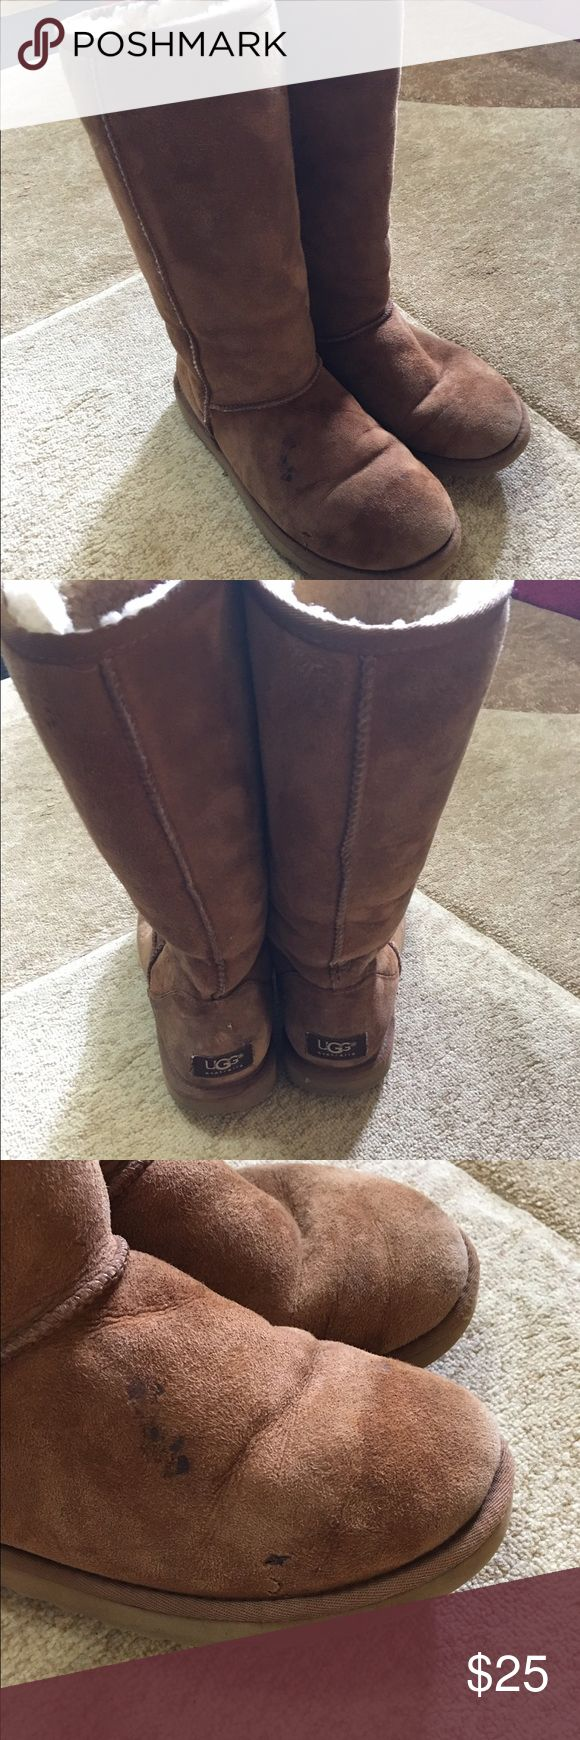 UGG Beige boots Super cute UGG tall Beige boots size 7. There is a small stain on the right boot shown in the last photo, and the hole is fixed. Other than that they're in good condition. Please ask any questions before purchasing! UGG Shoes Winter & Rain Boots